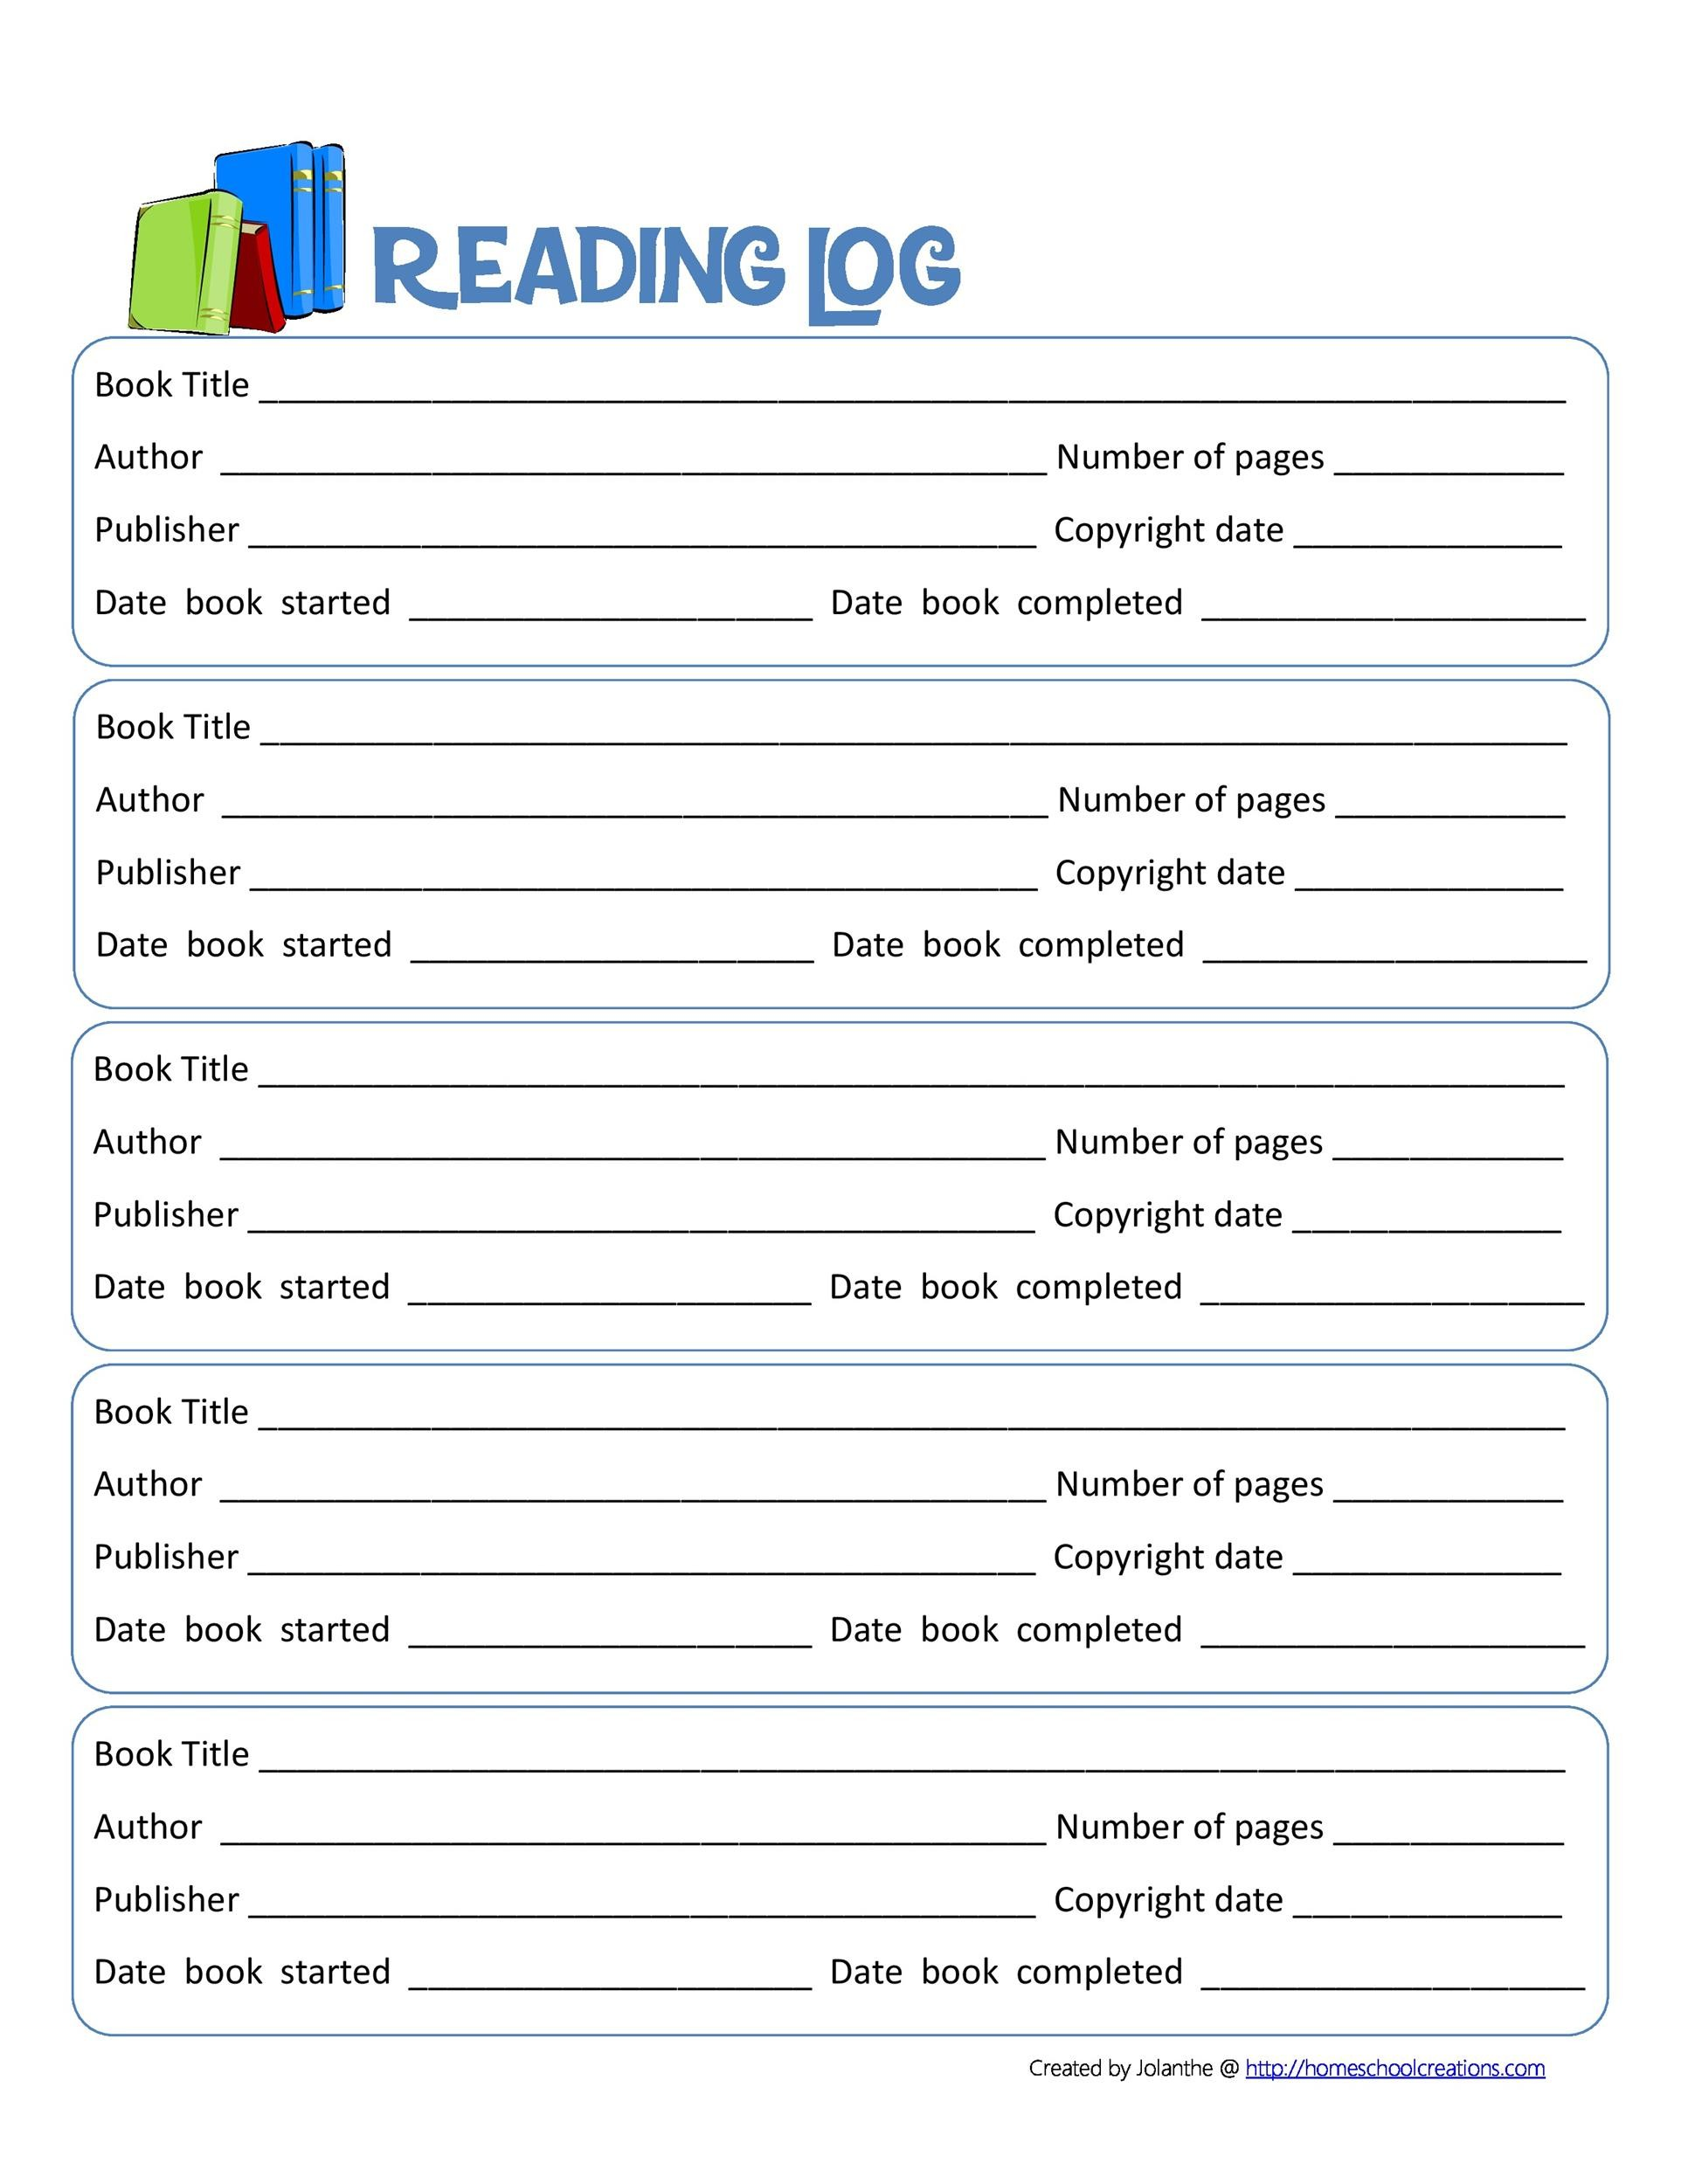 Free reading log template 33